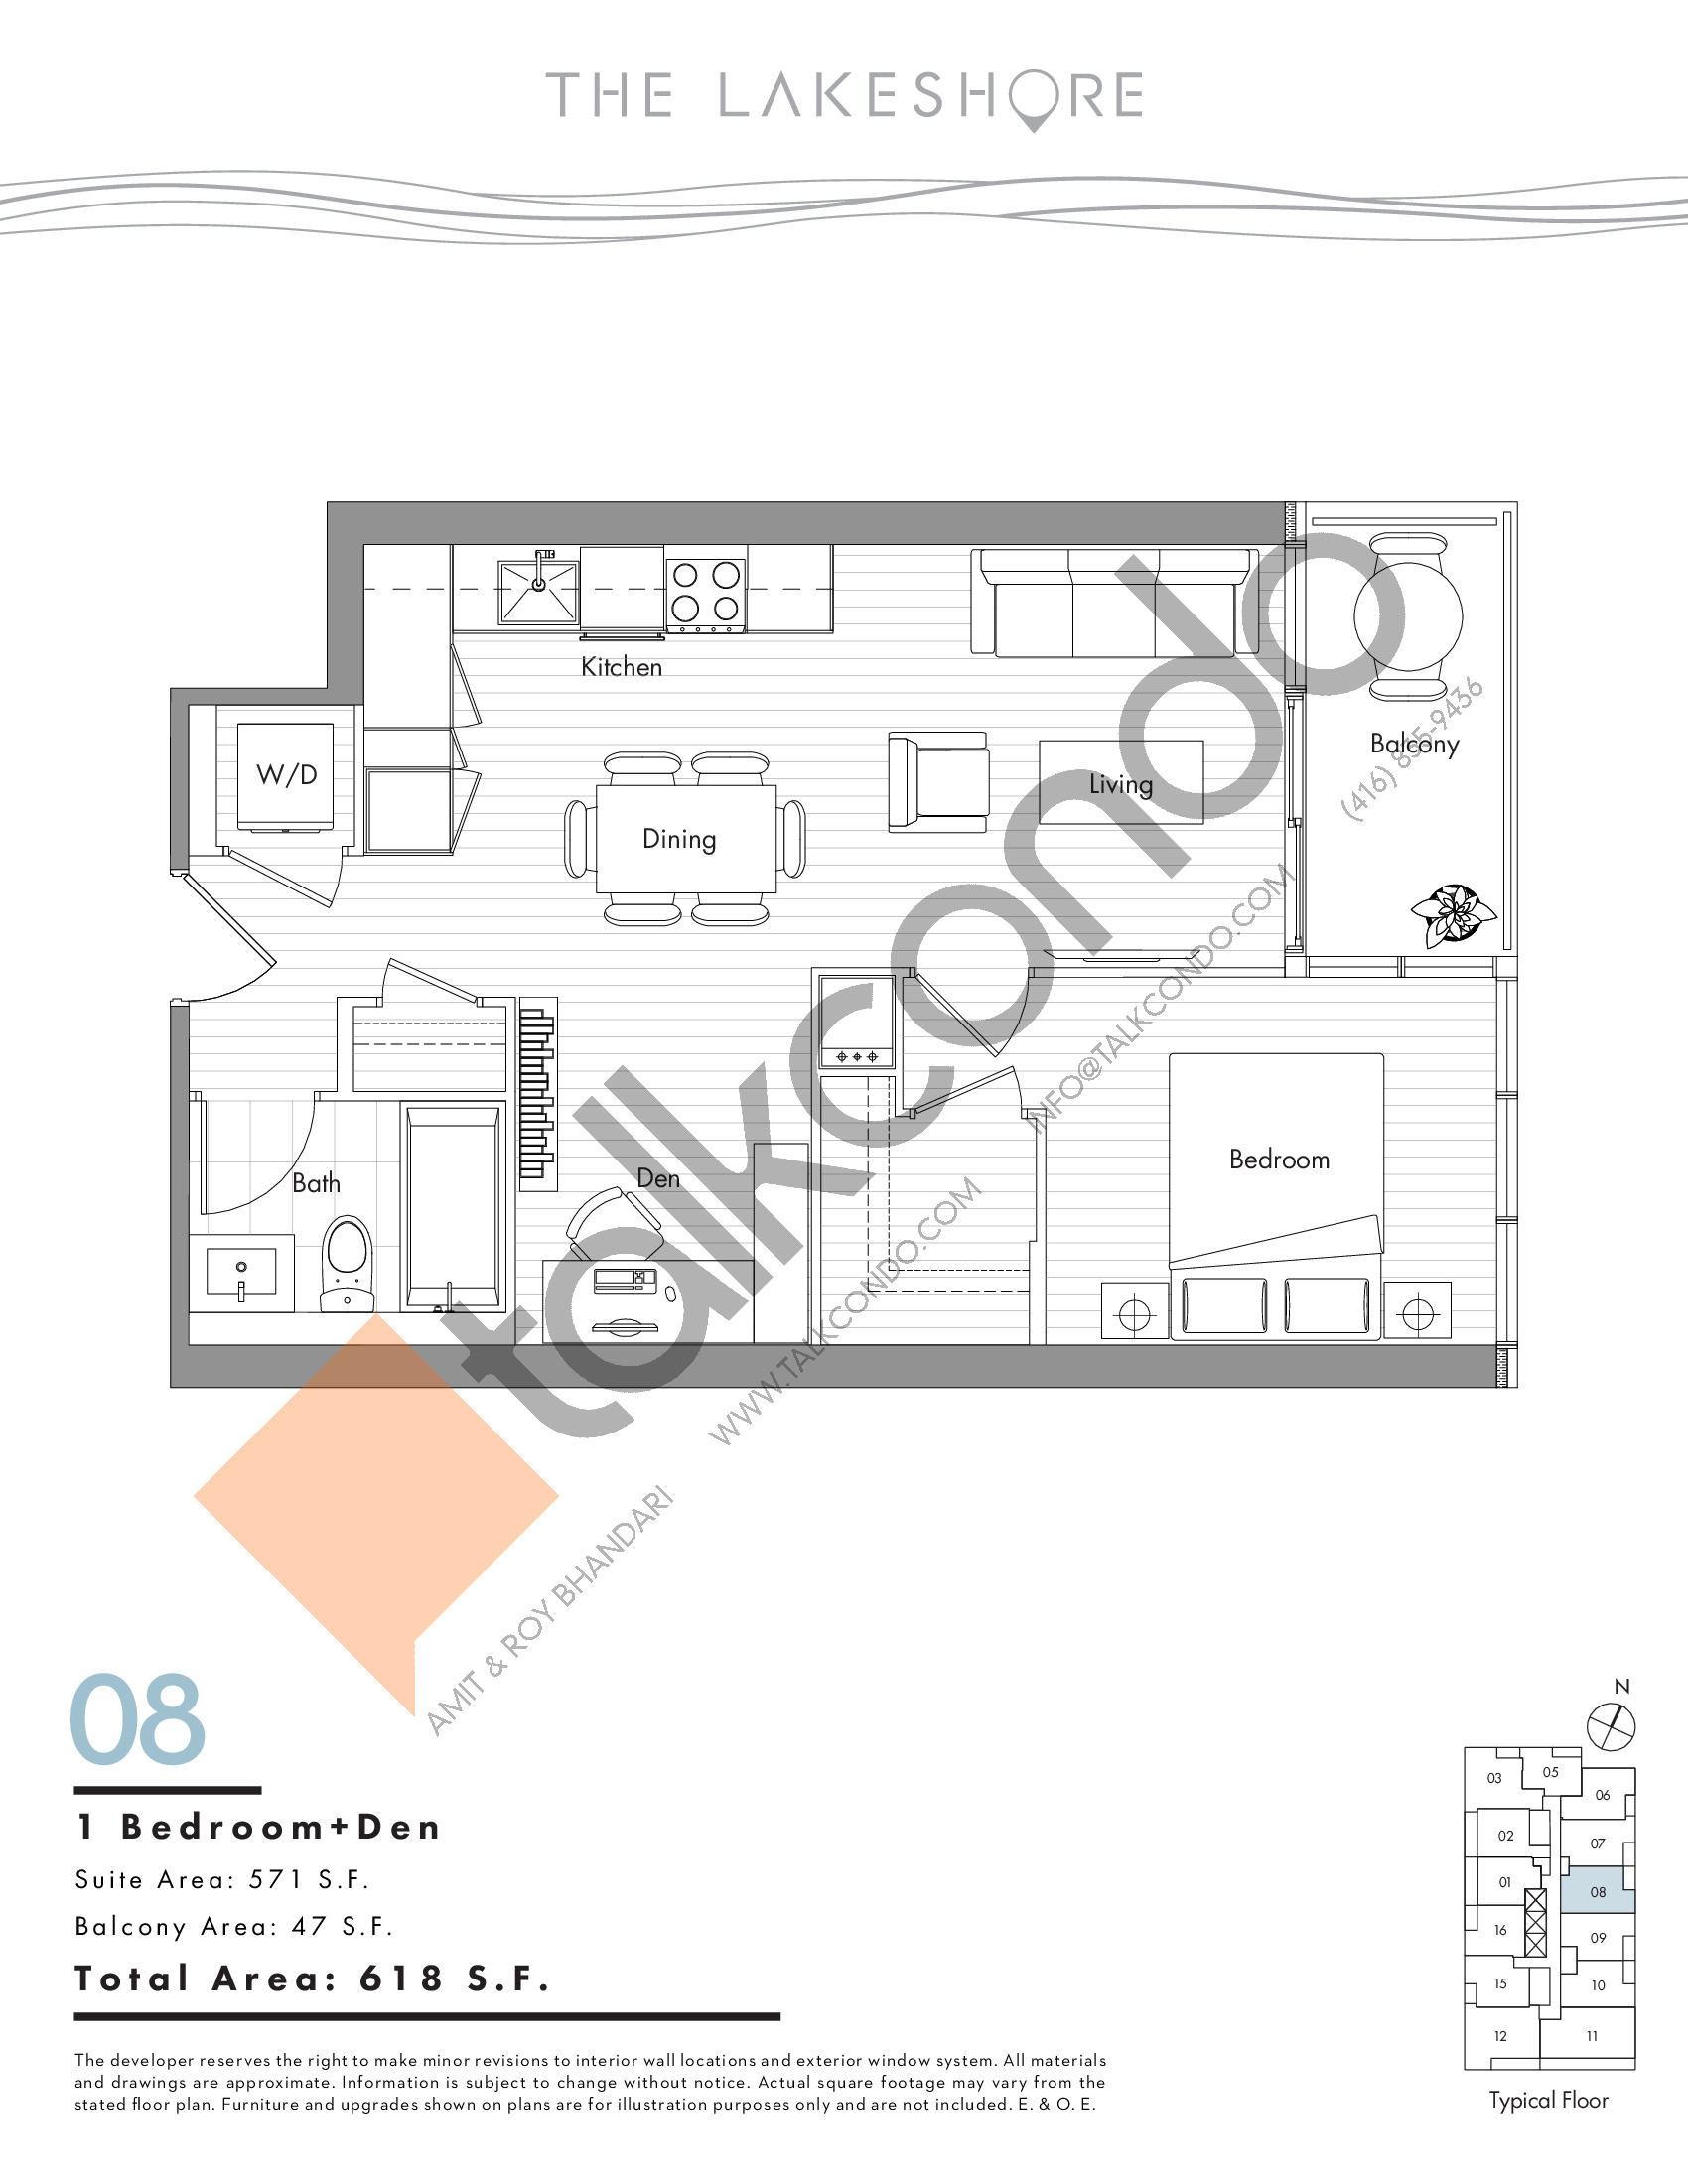 08 Floor Plan at The LakeShore Condos - 571 sq.ft